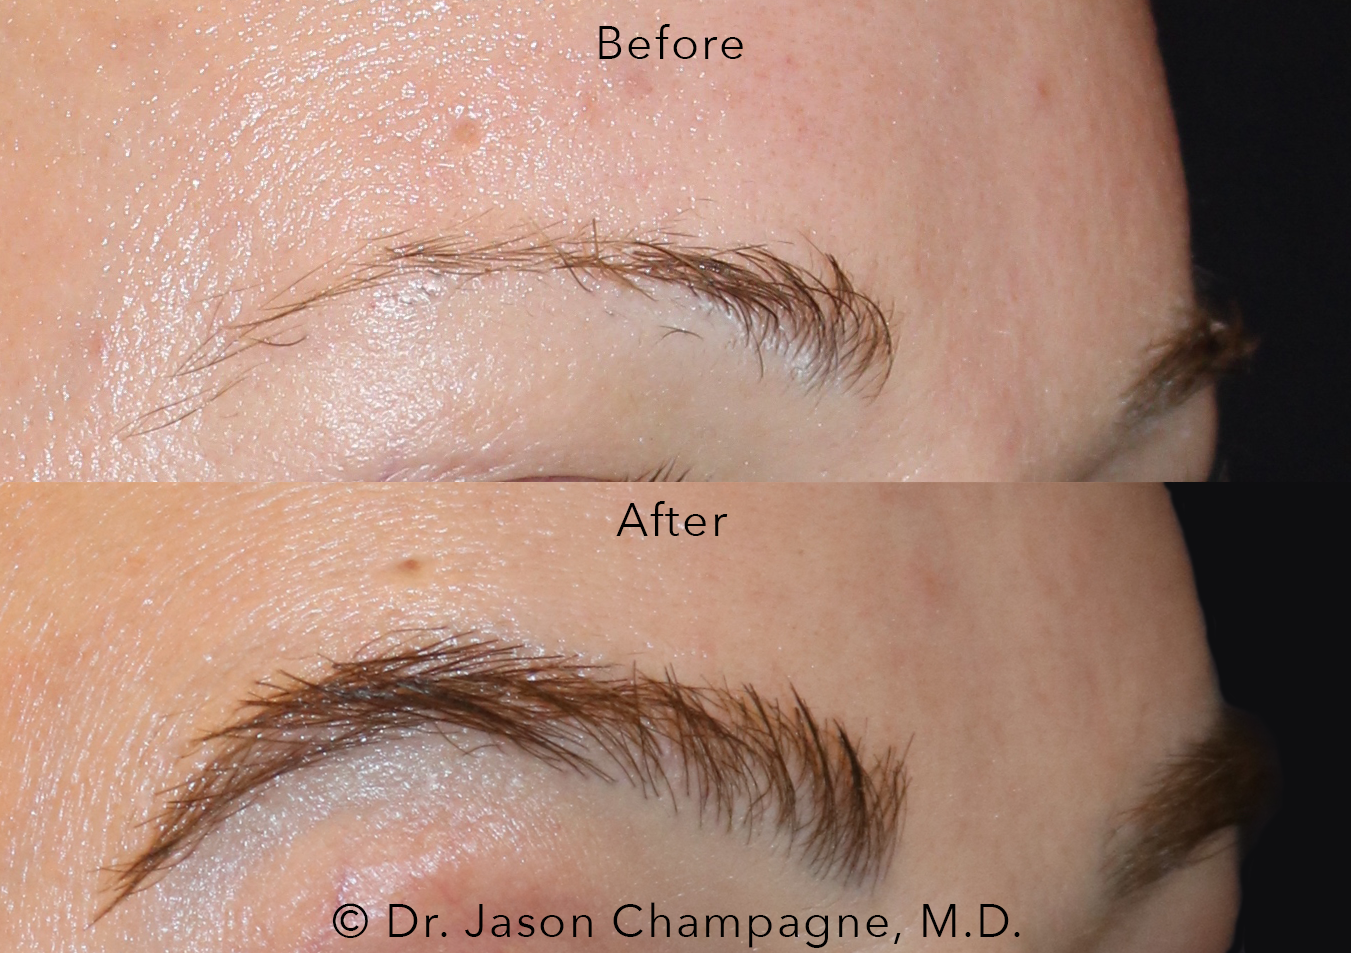 Dr-Jason-Champagne-Female-Eyebrow-Hair-Transplant-Before-and-After